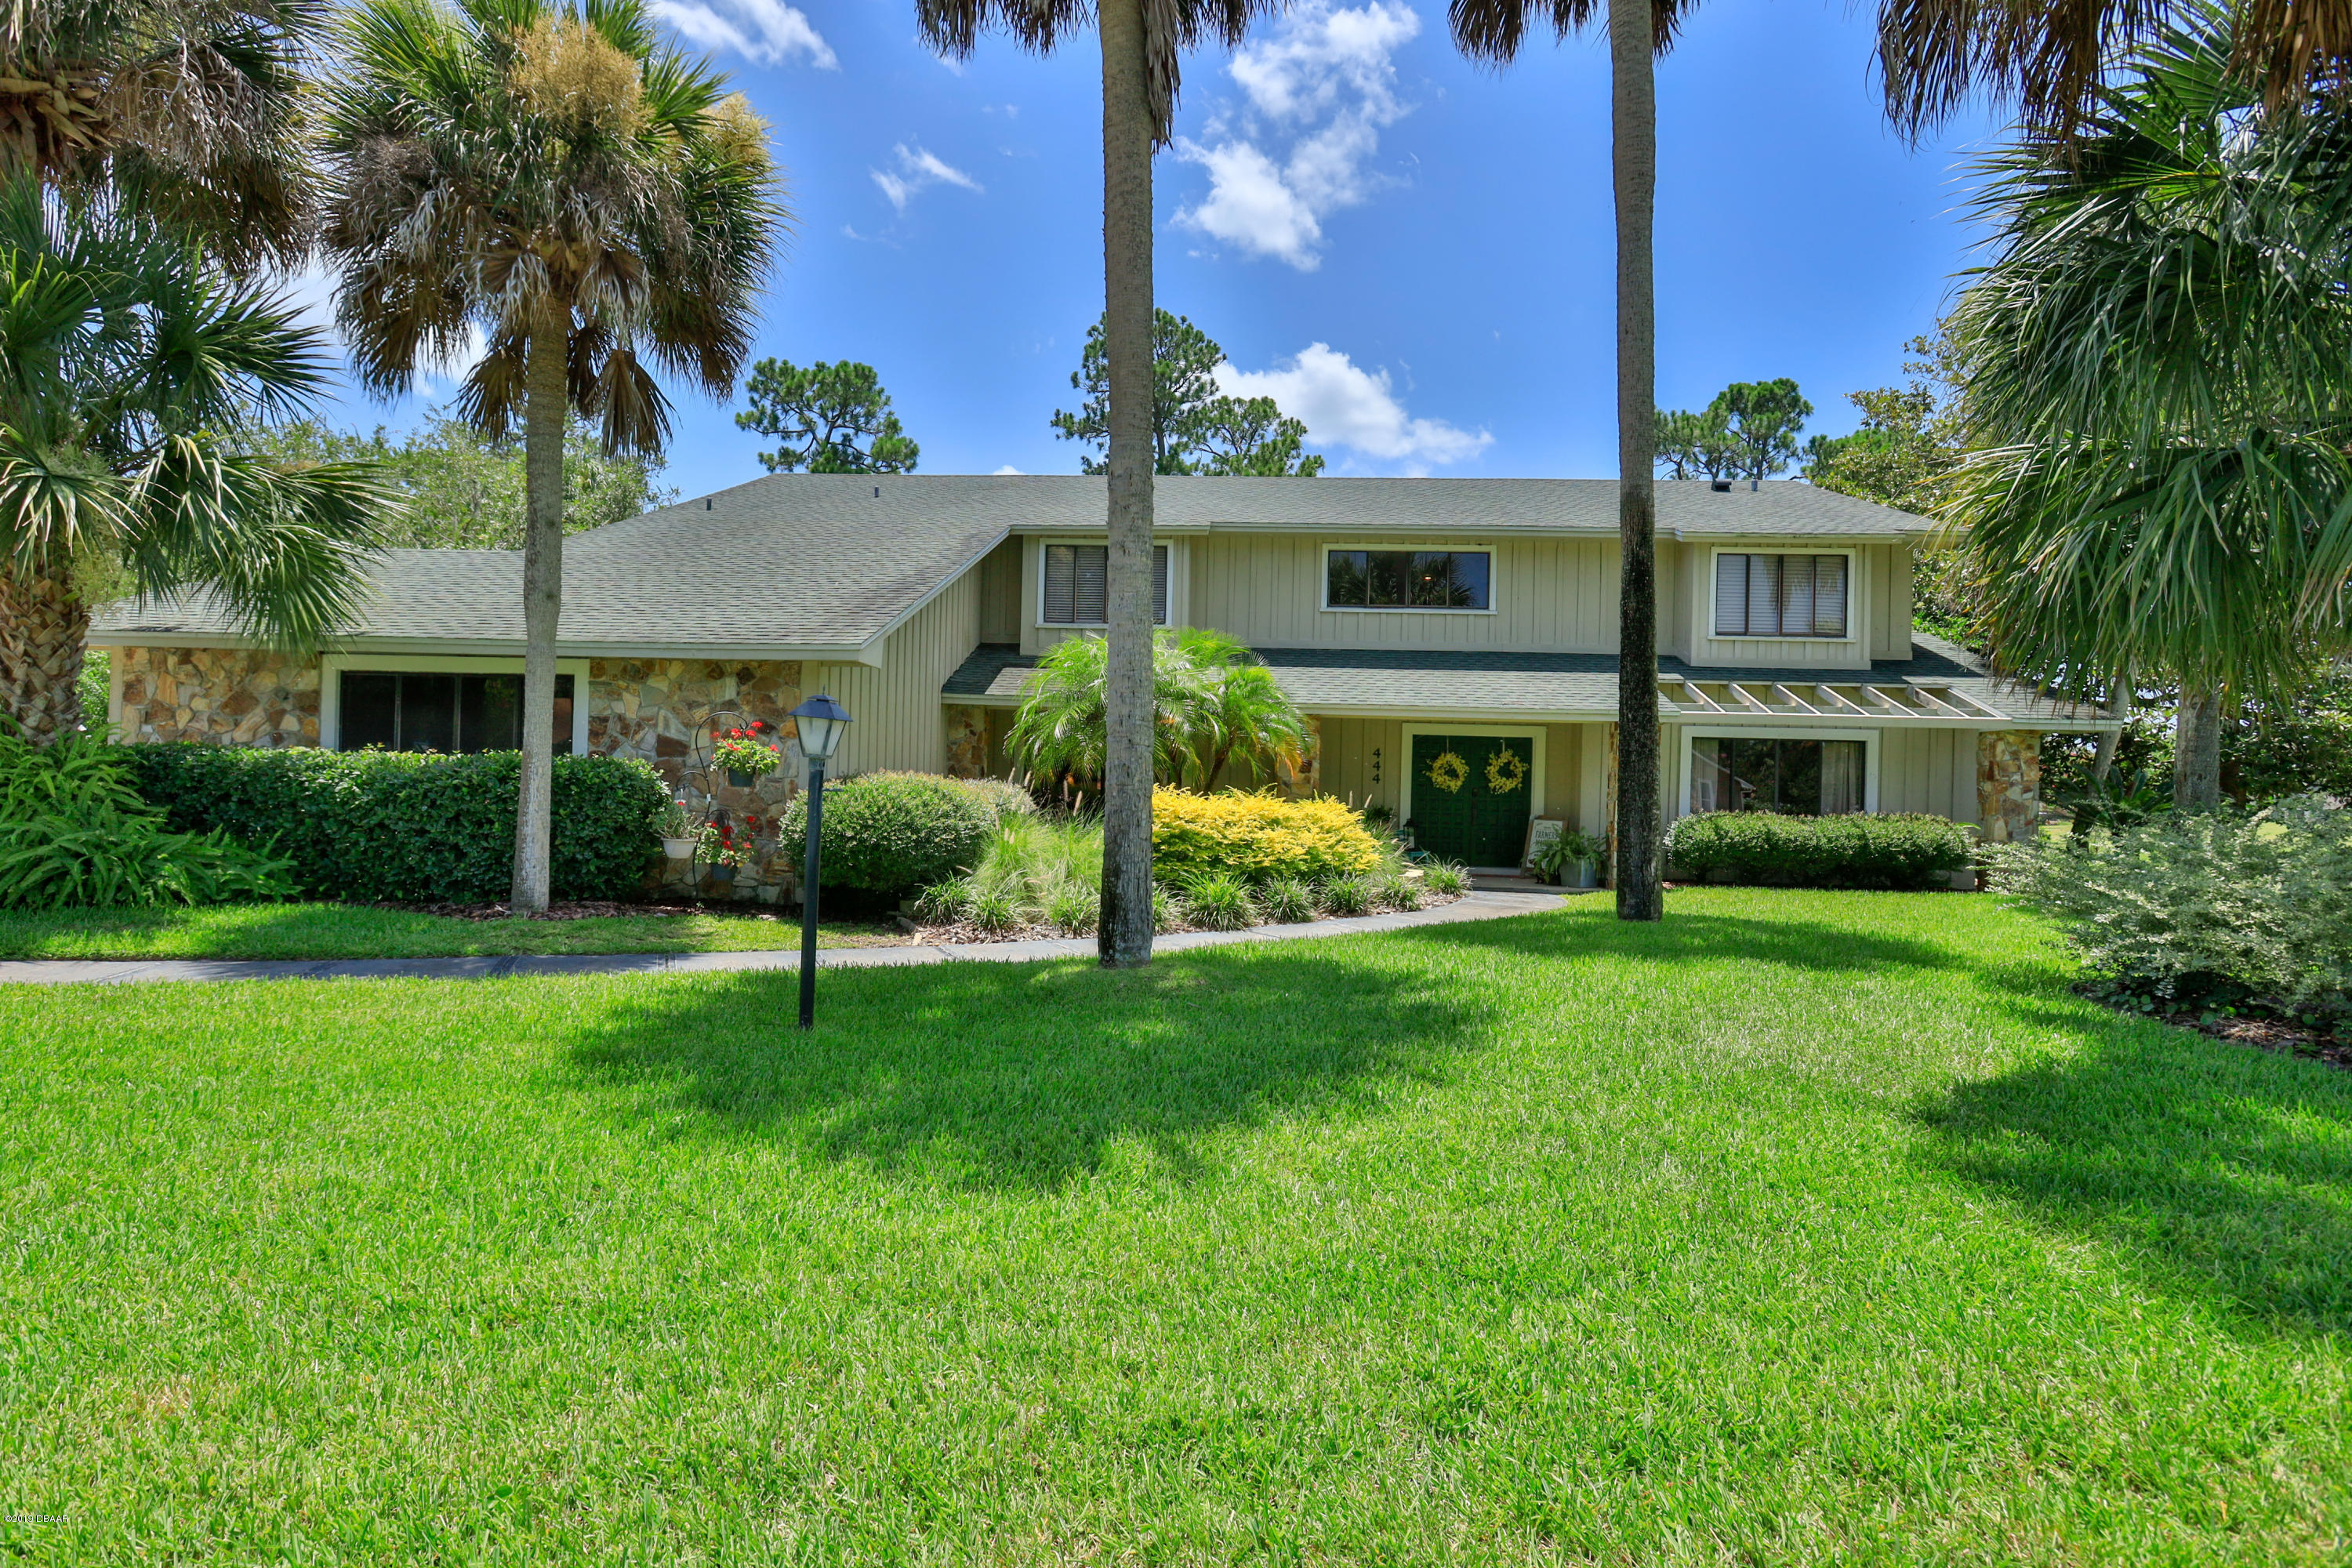 444 Pelican Bay Drive, one of homes for sale in South Daytona